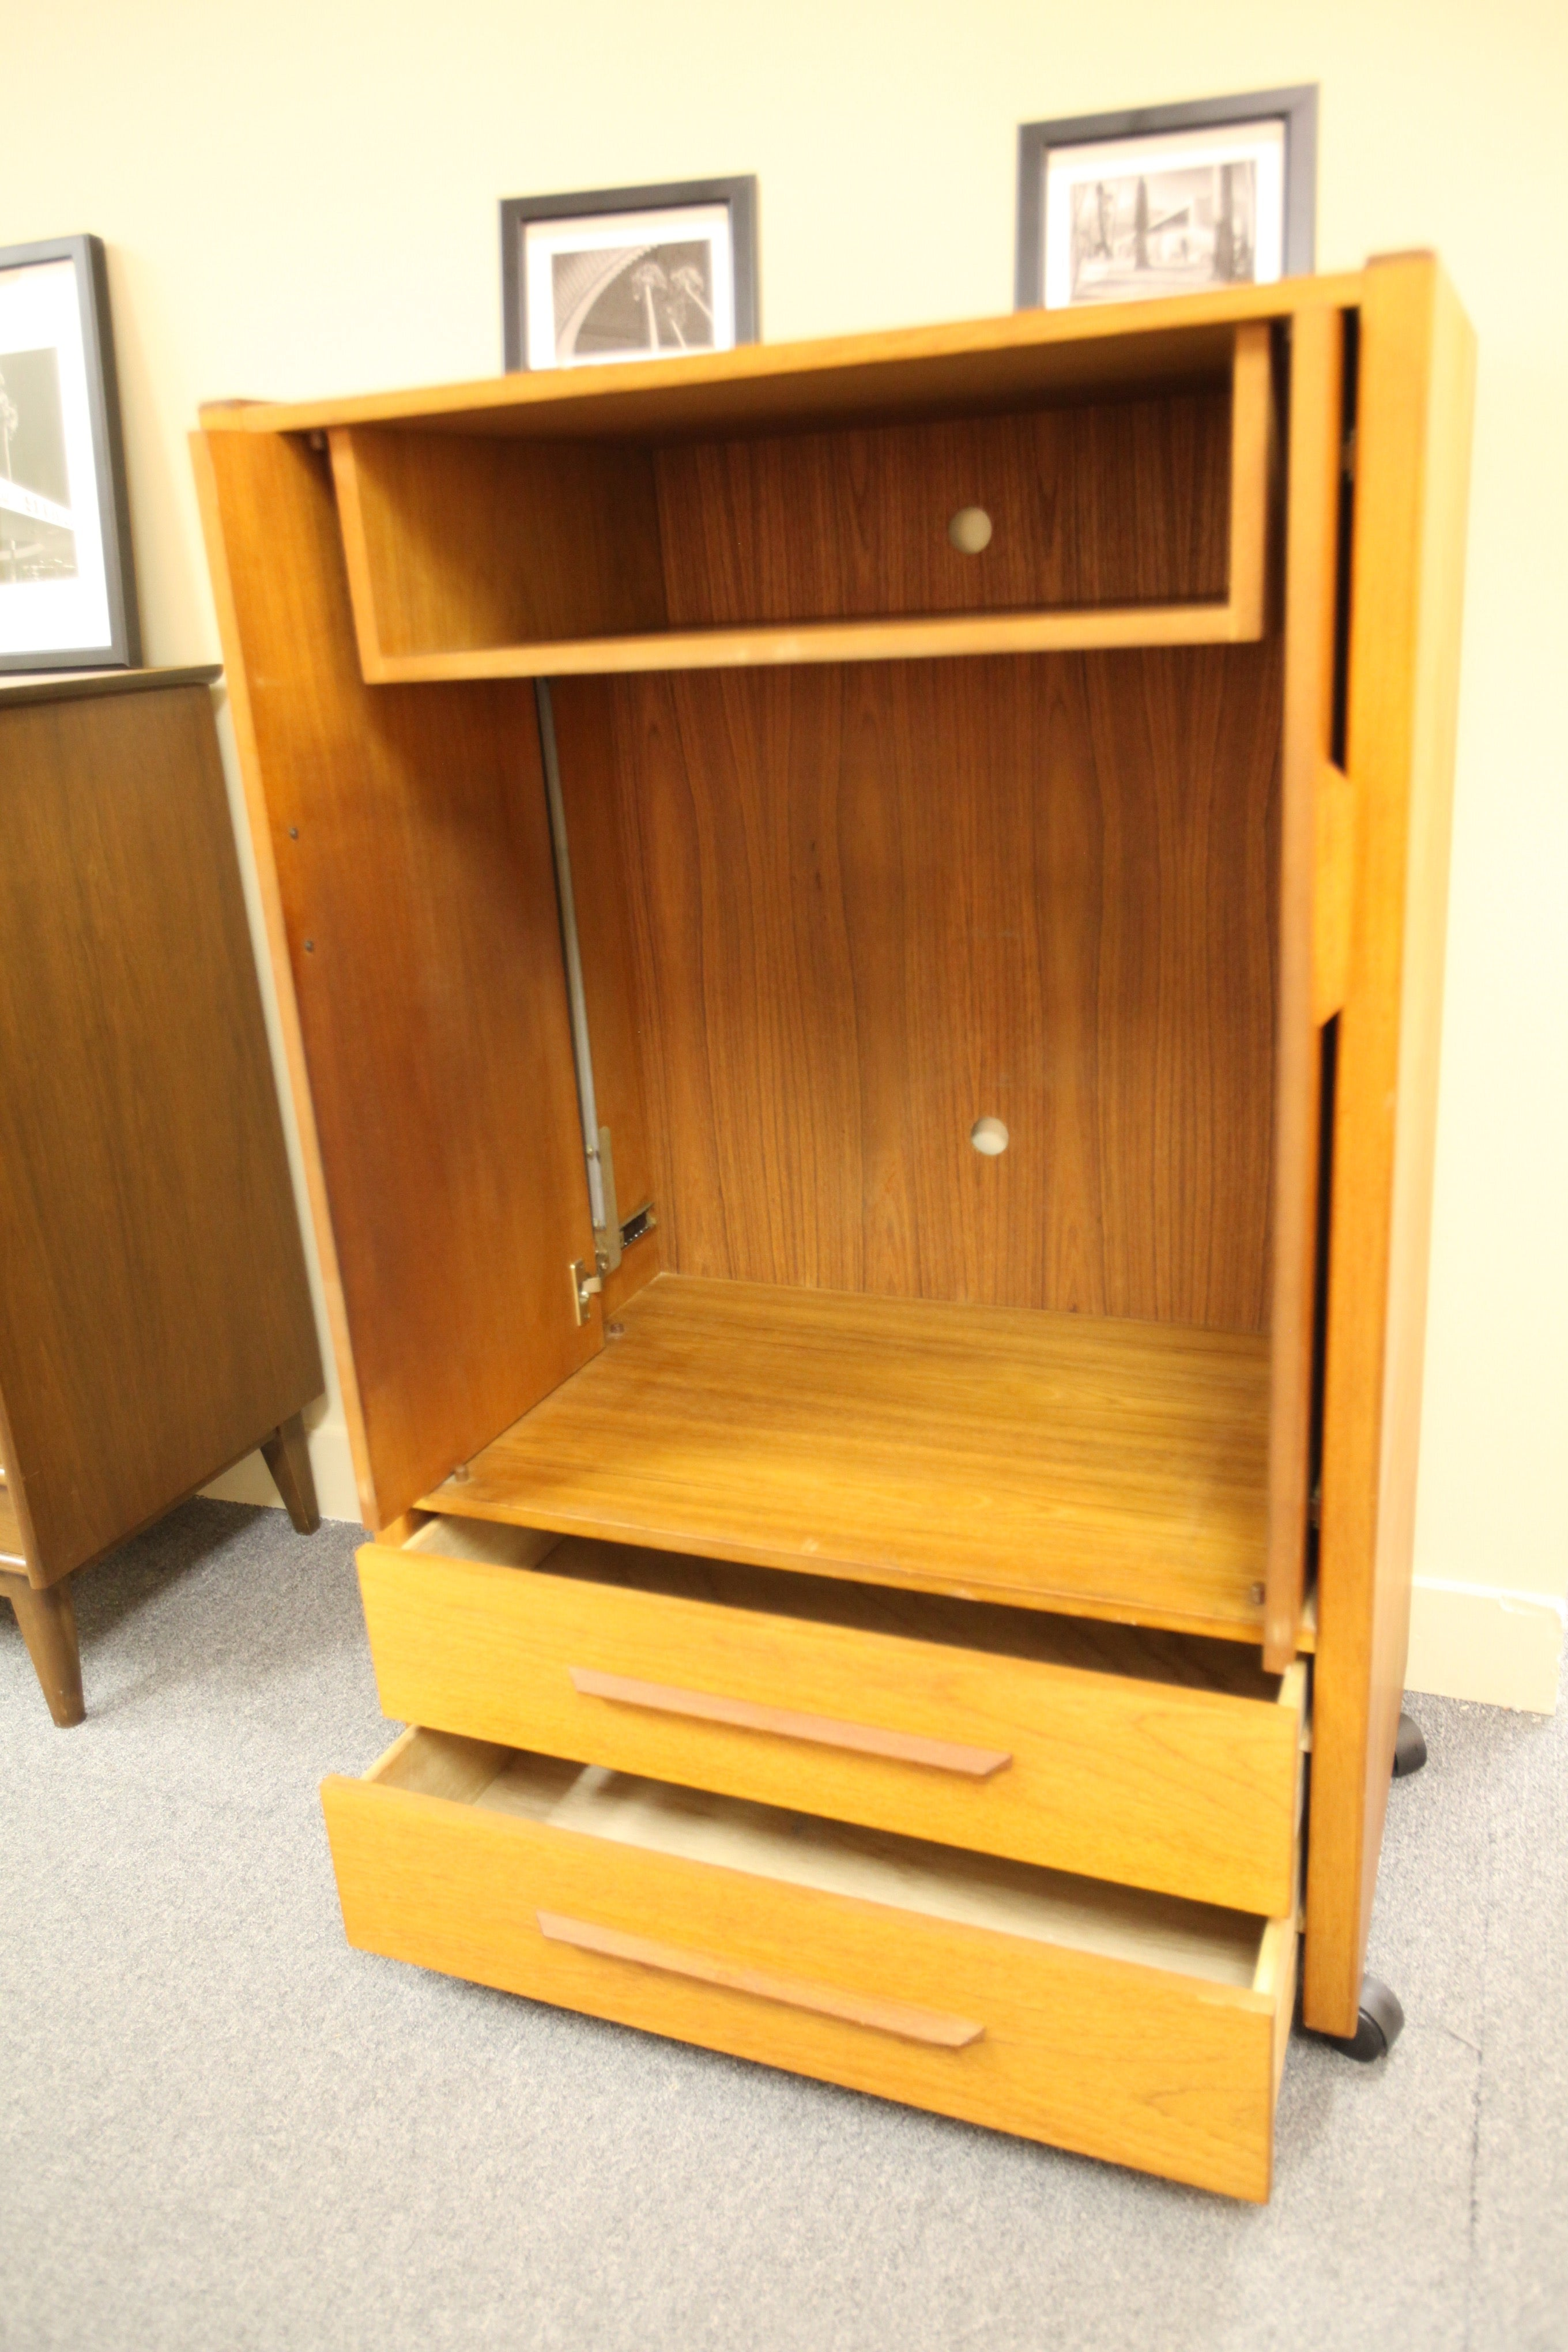 Teak Armoire with Drawers (33.5W x 50.75H x 20.25D)